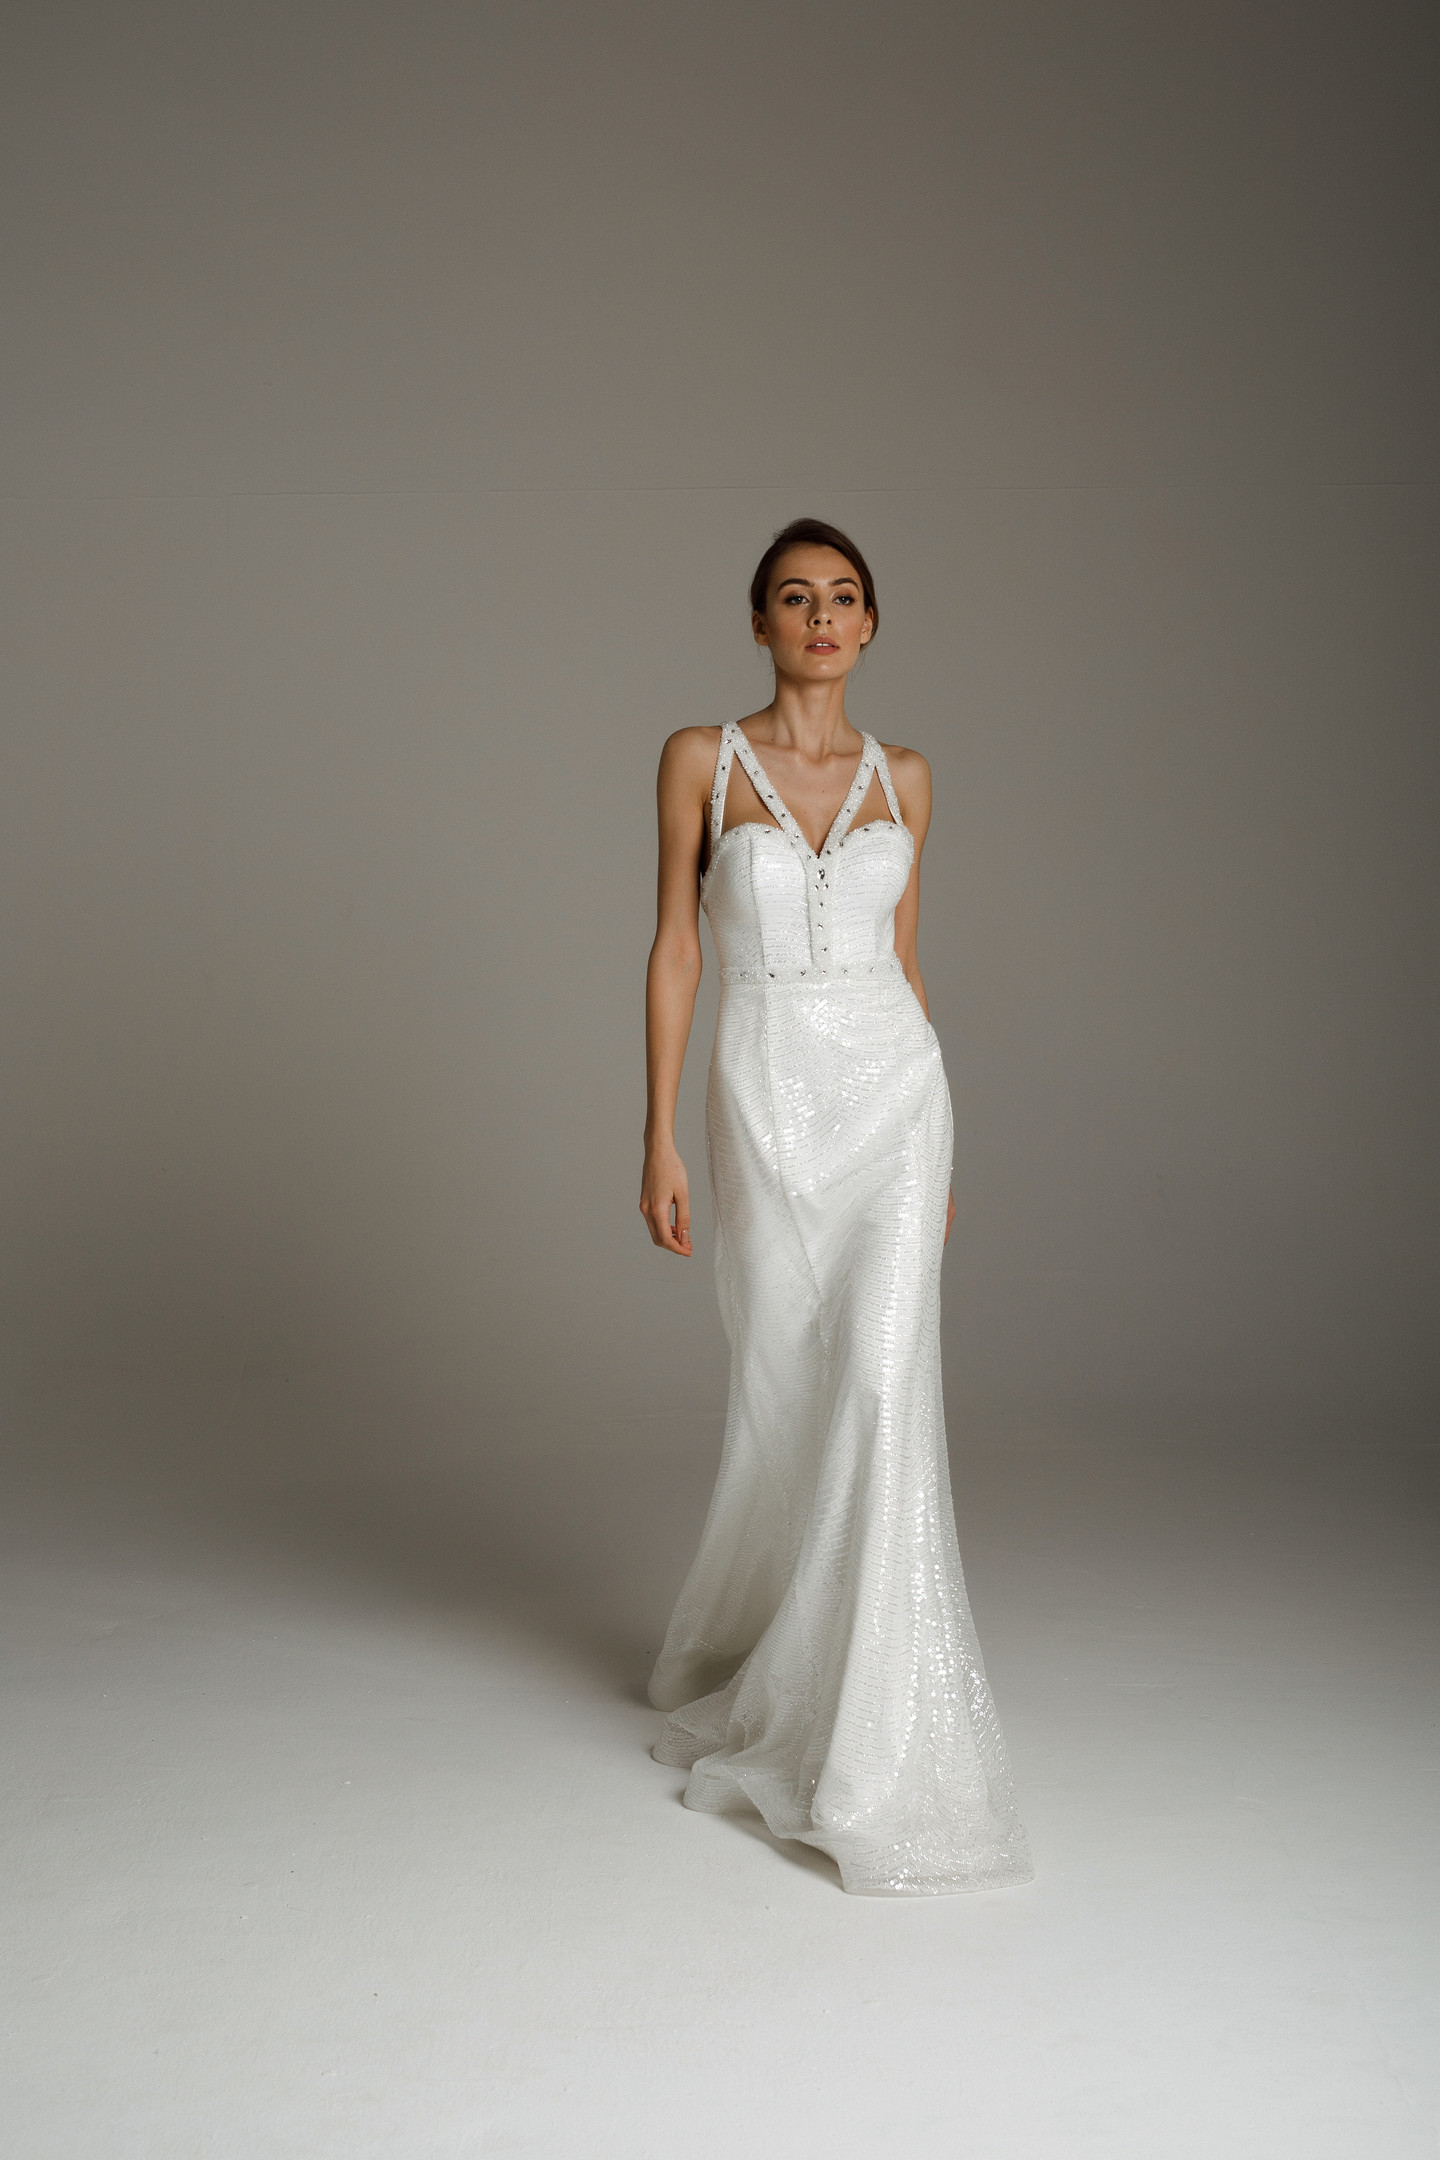 Lucretia gown, 2020, couture, gown, dress, bridal, off-white, lace, embroidery, mermaid, discount, sale